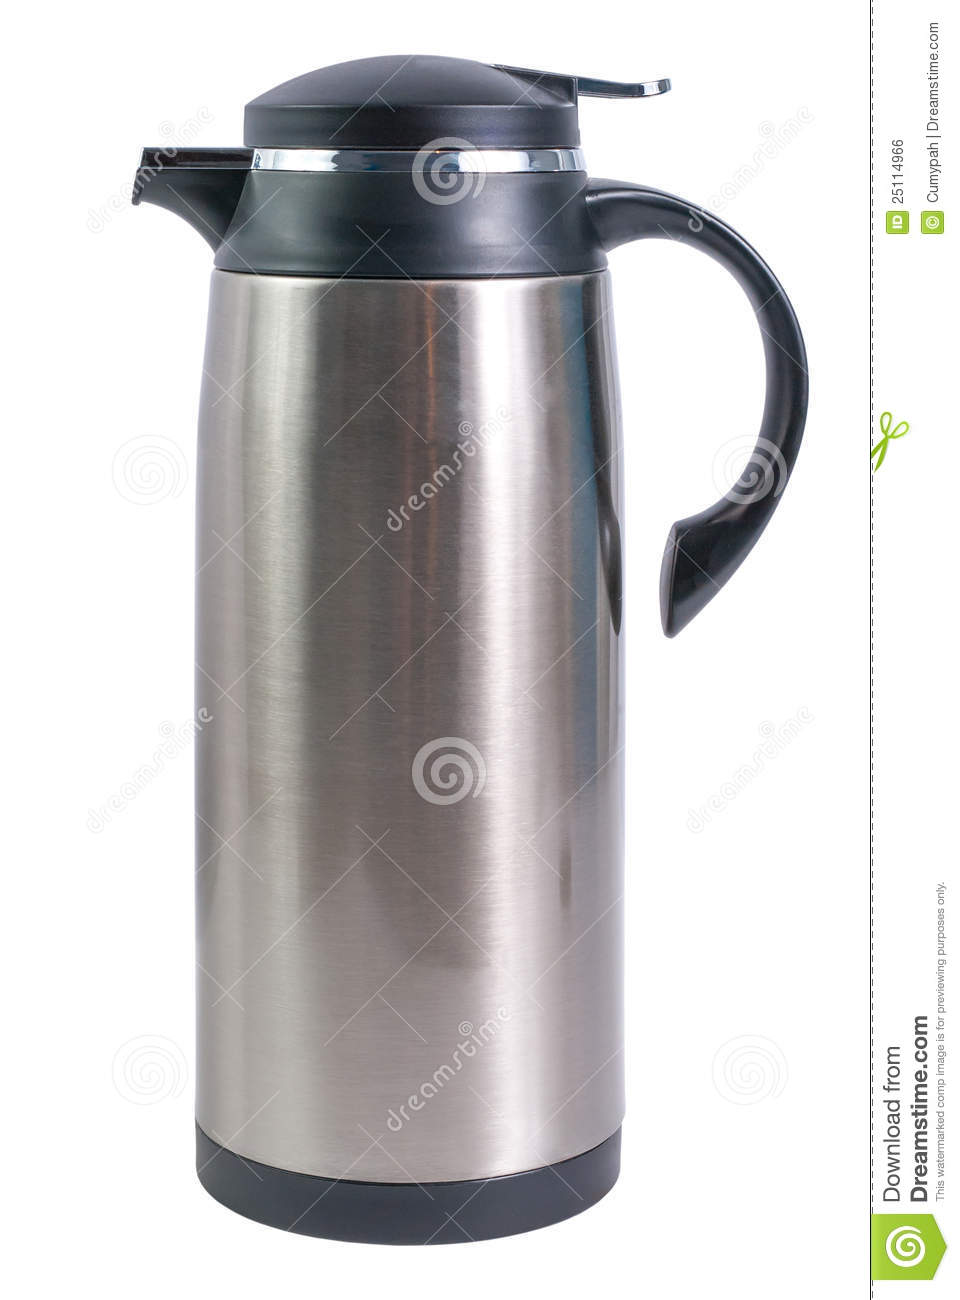 outdoor kitchen plans free most expensive knife in the world thermo flask for hot drinks royalty stock image ...